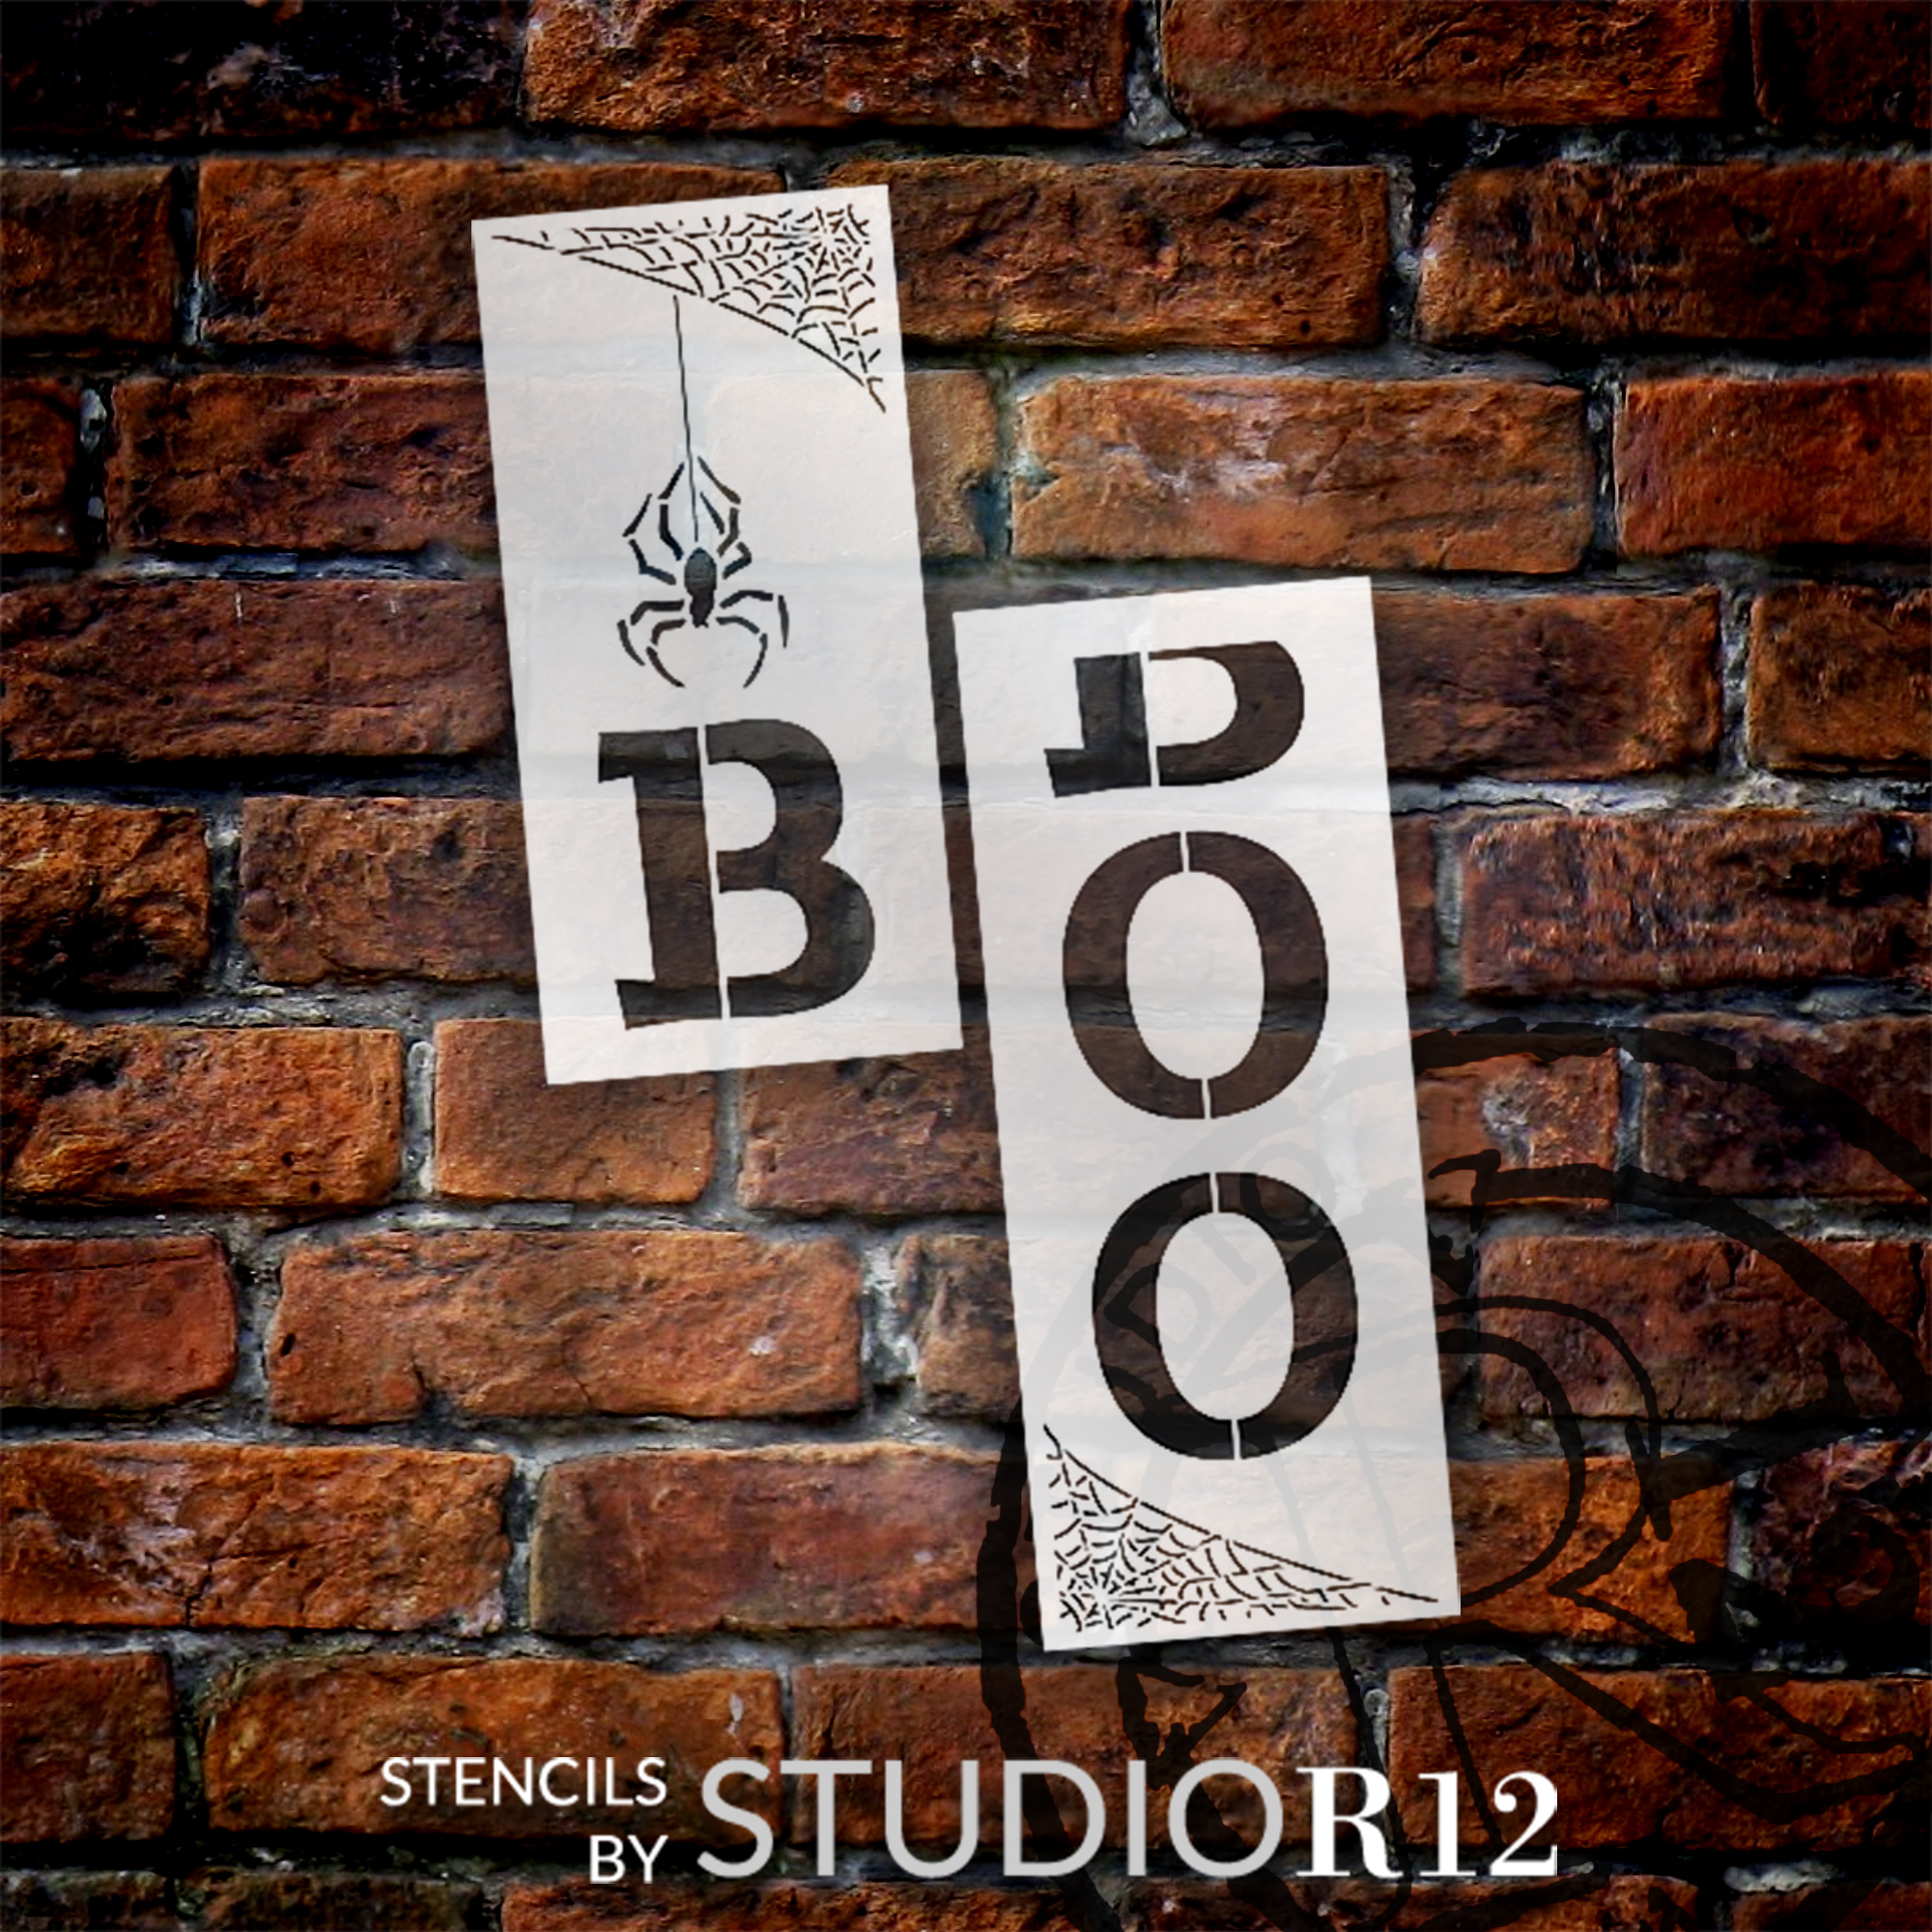 Boo Tall Porch Stencil with Spider Web by StudioR12 | 2 Piece | DIY Large Vertical Fun Halloween Home Decor | Front Door Entryway | Craft & Paint Wood Leaner Signs | Reusable Mylar Template | Size 4ft